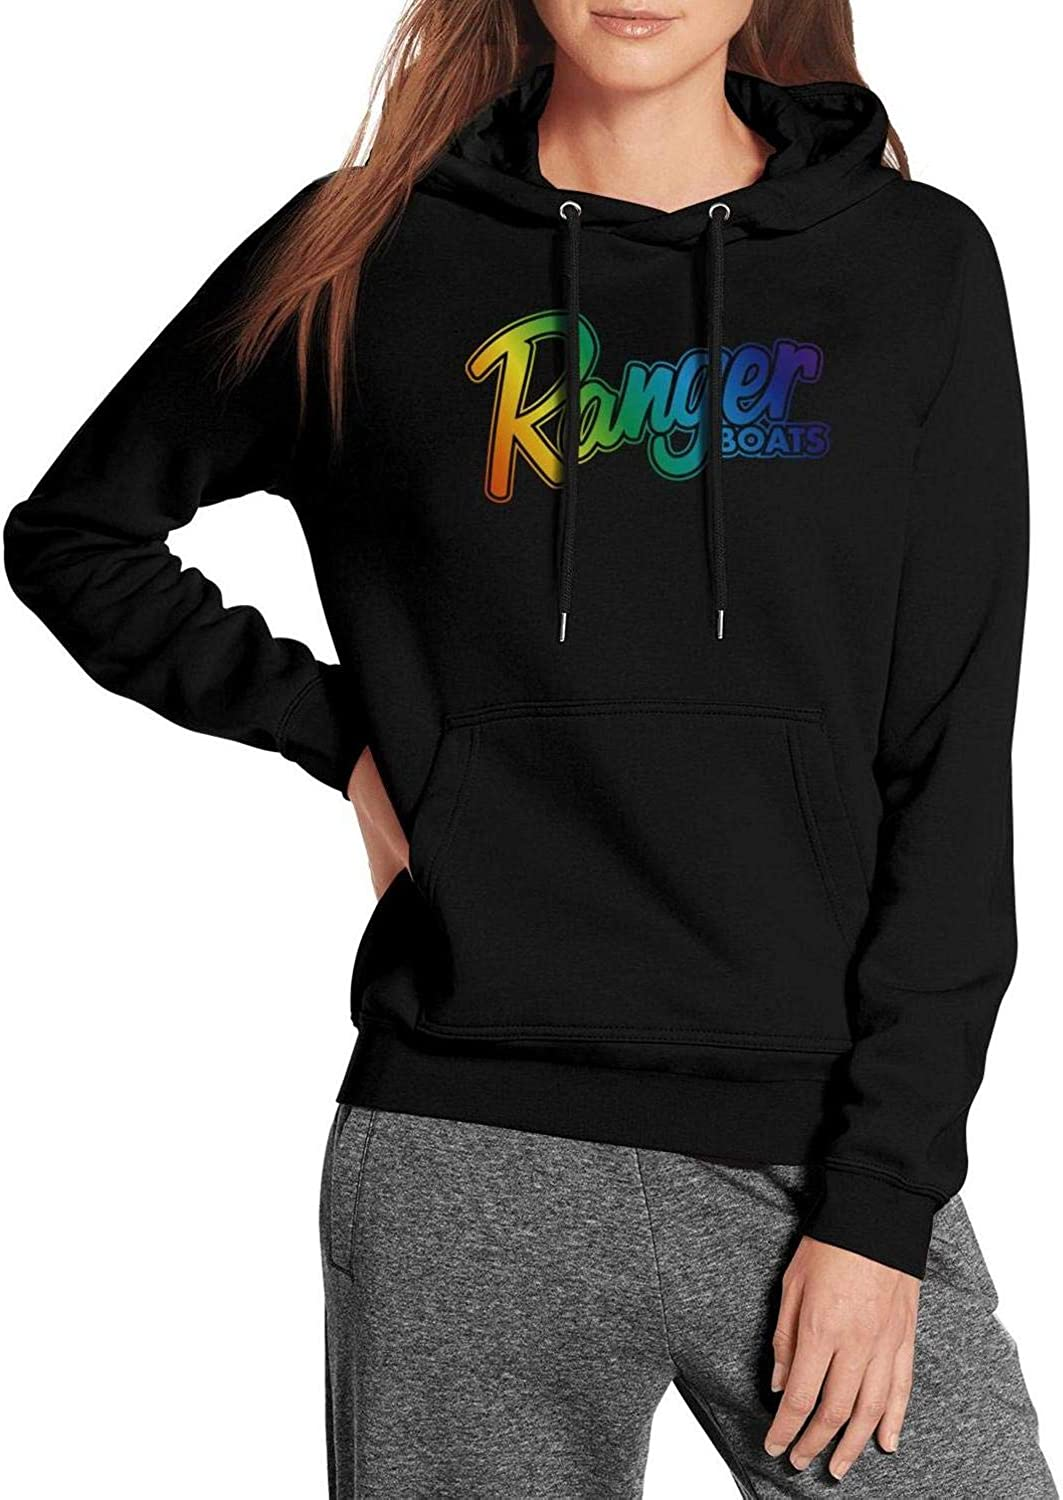 Womens Best Hoodies Ranger-Boats-American-Flag-Distressed-Boats with Pocket Fit Sweatshirt Funny Loose Trendy Sweaters